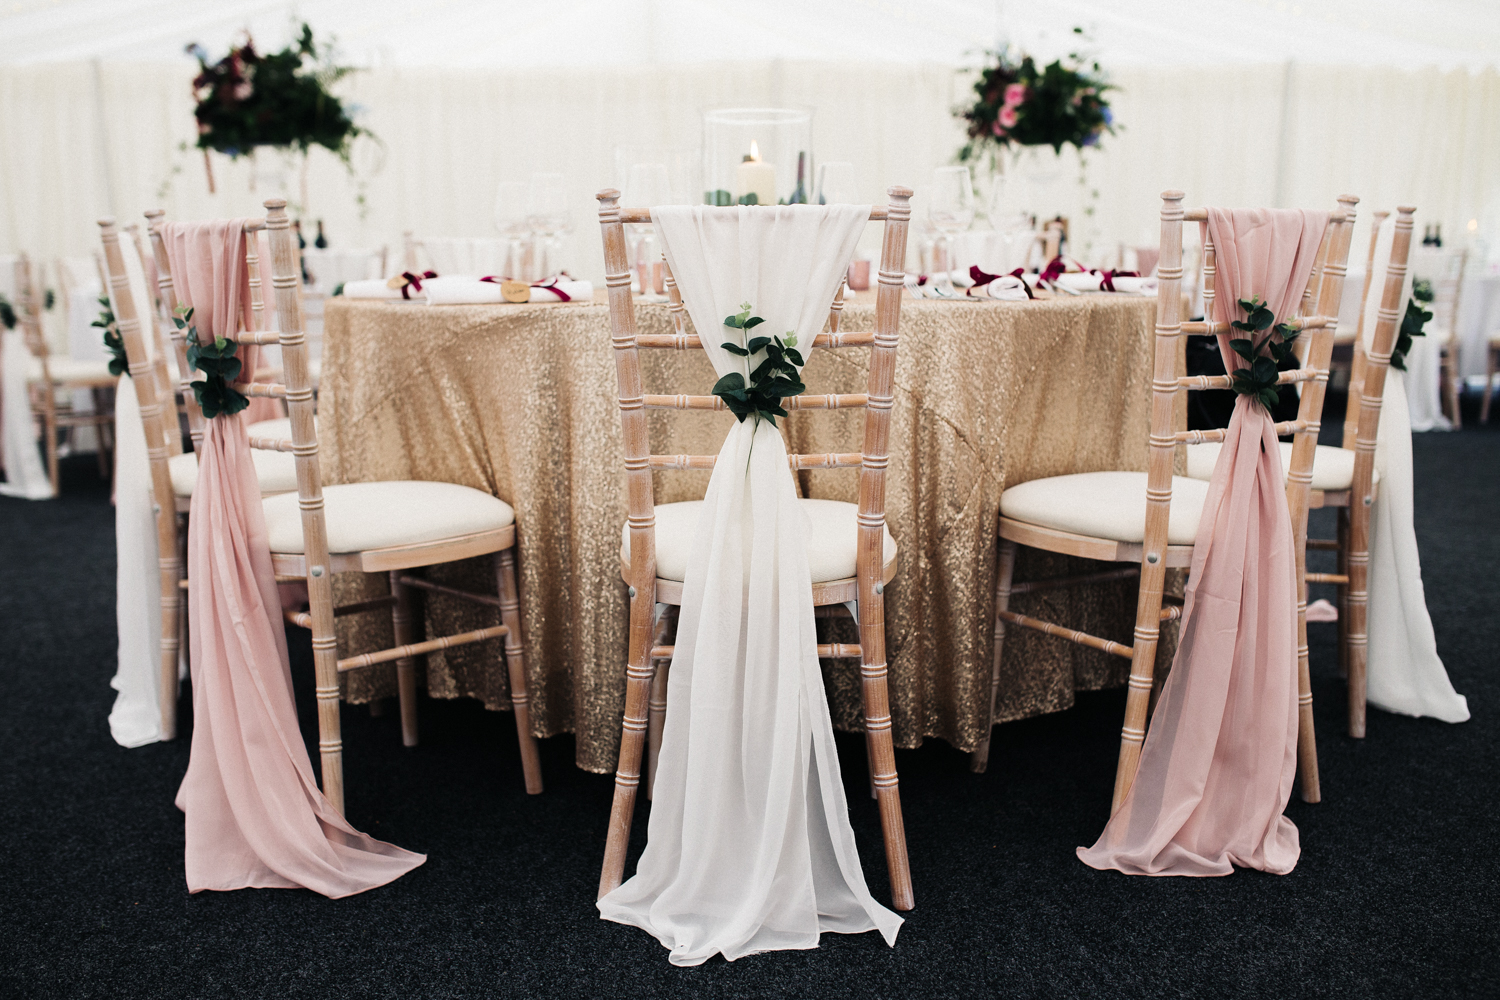 elegant draped chair covers with eucalyptus in pink and white. ormesby hall wedding middlesbrough photographer. stop motion wedding films videos uk